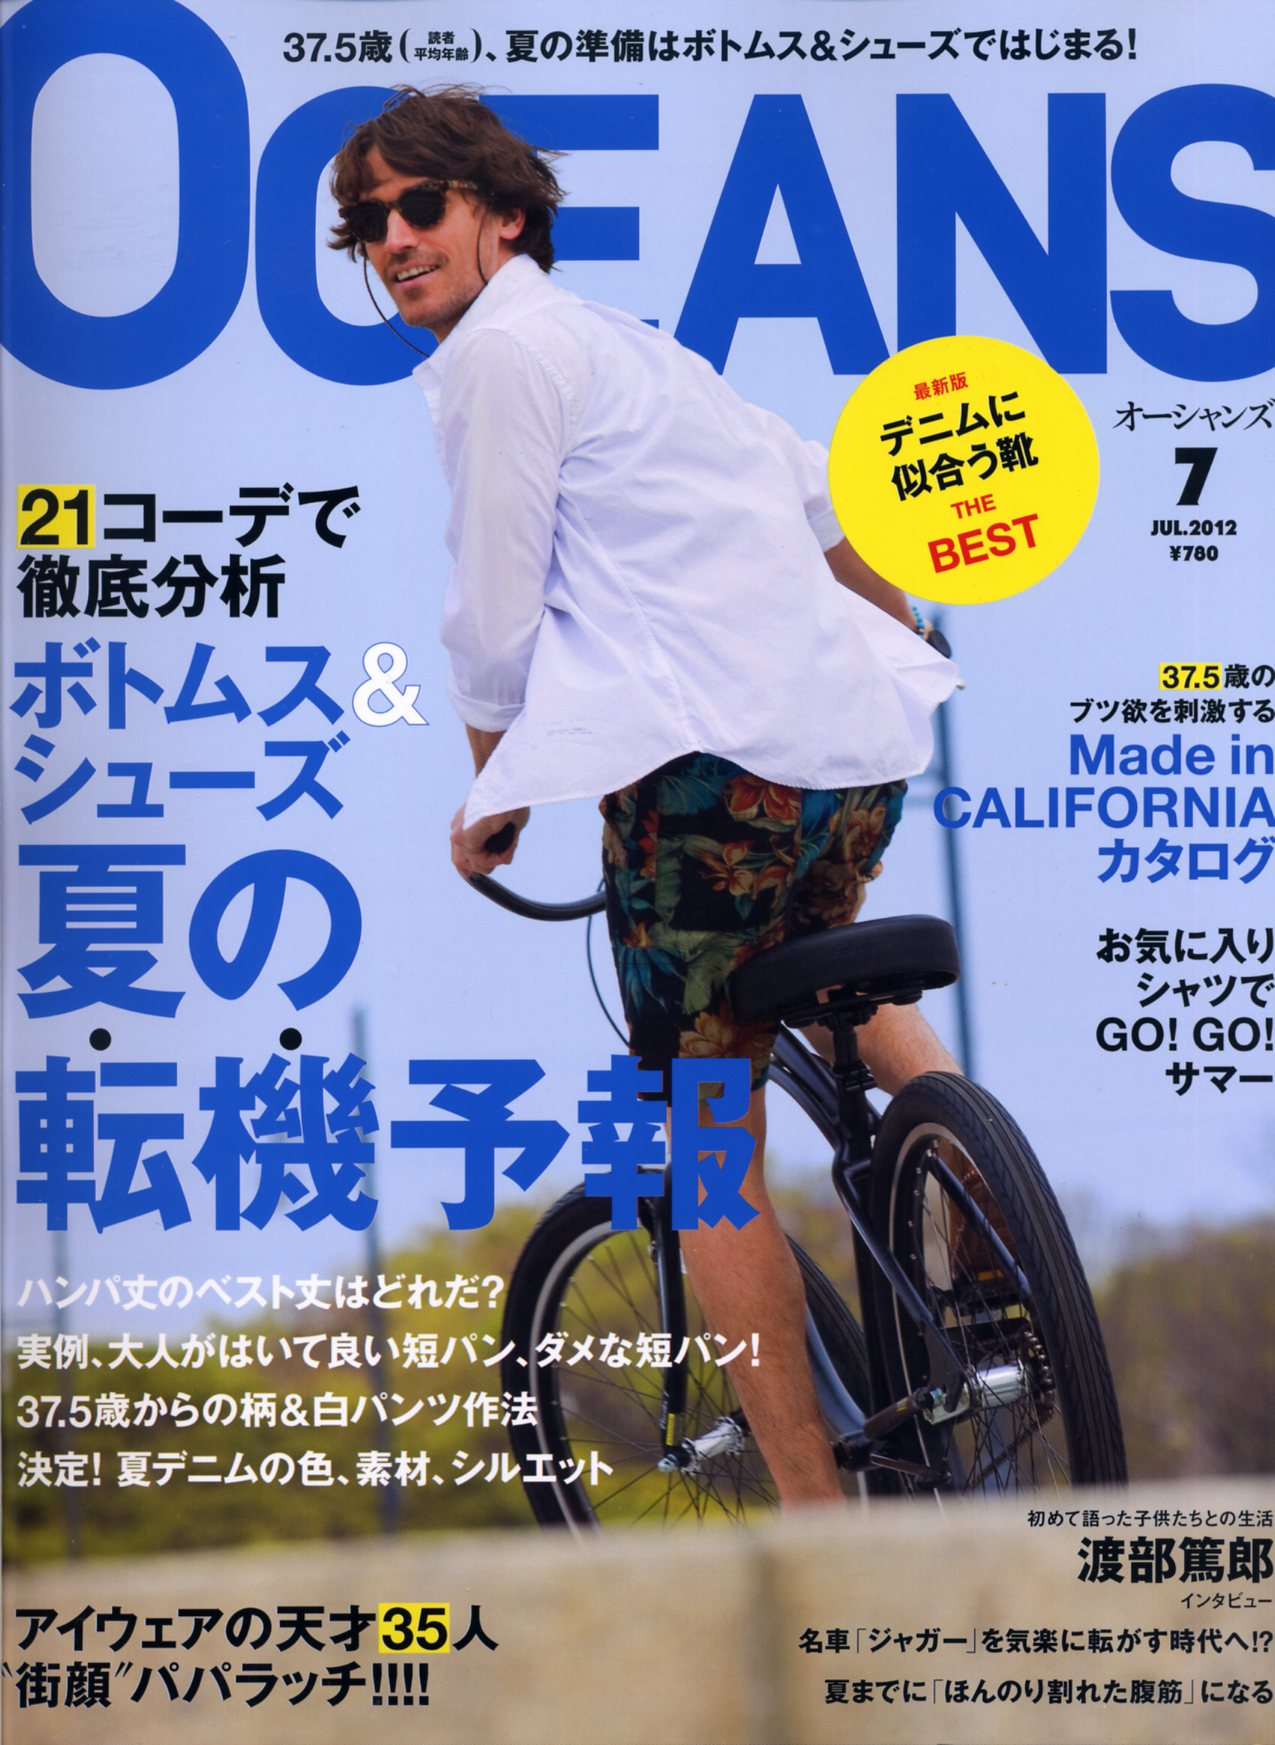 PRESS_OCEANS_COVER